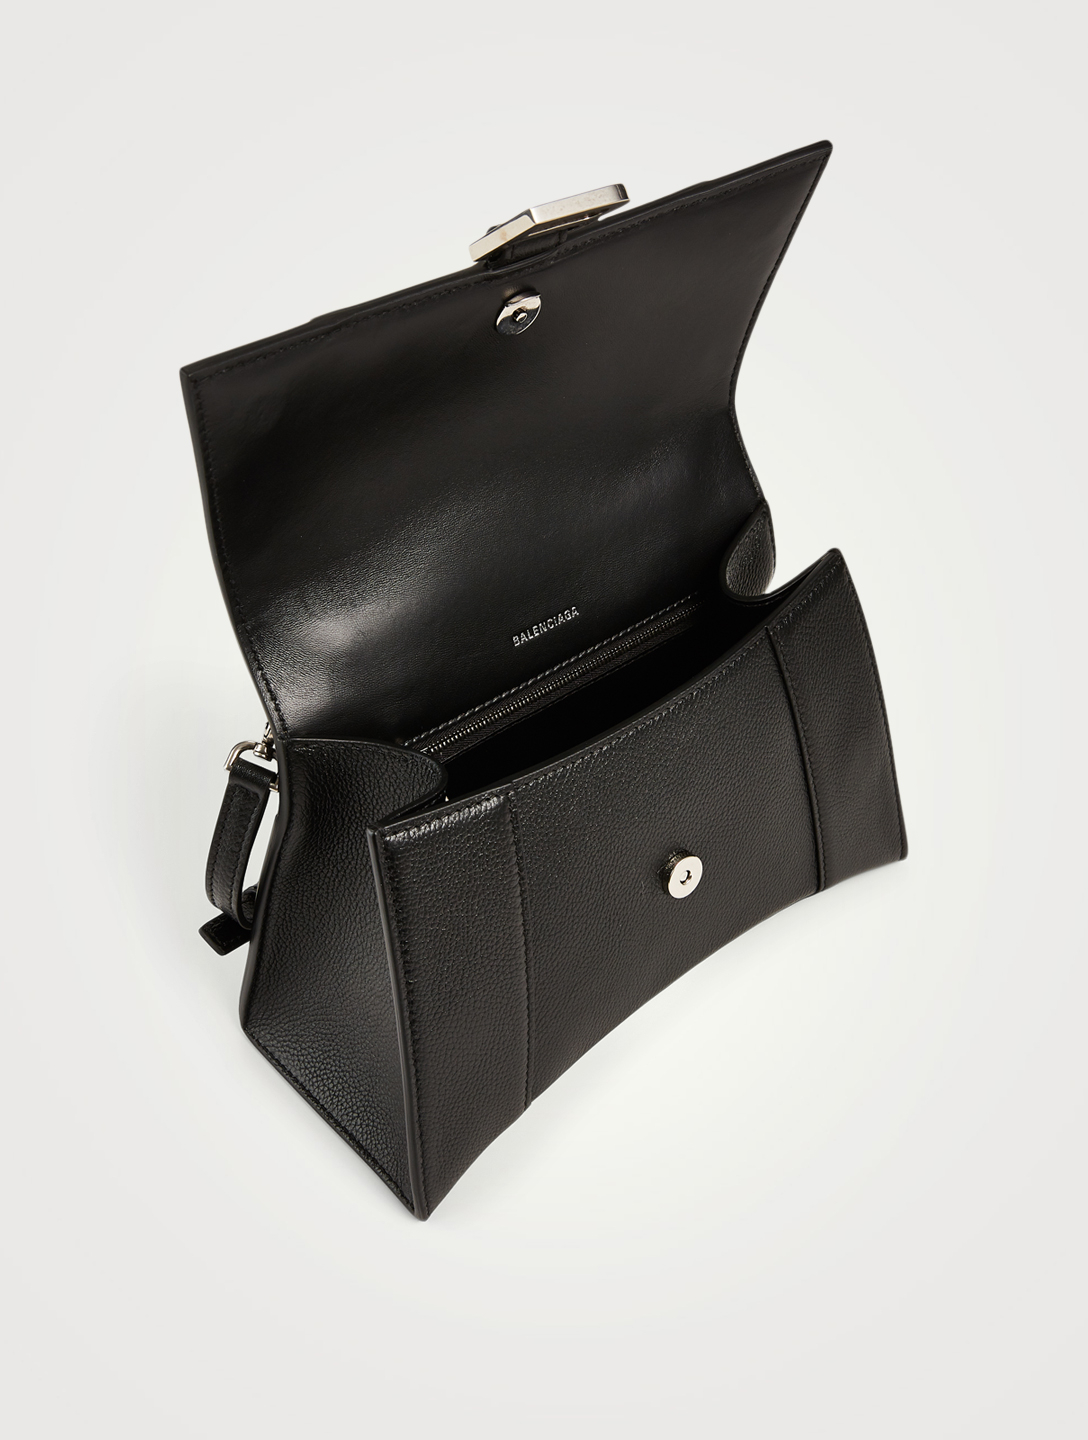 BALENCIAGA Small Hourglass Leather Bag Women's Black